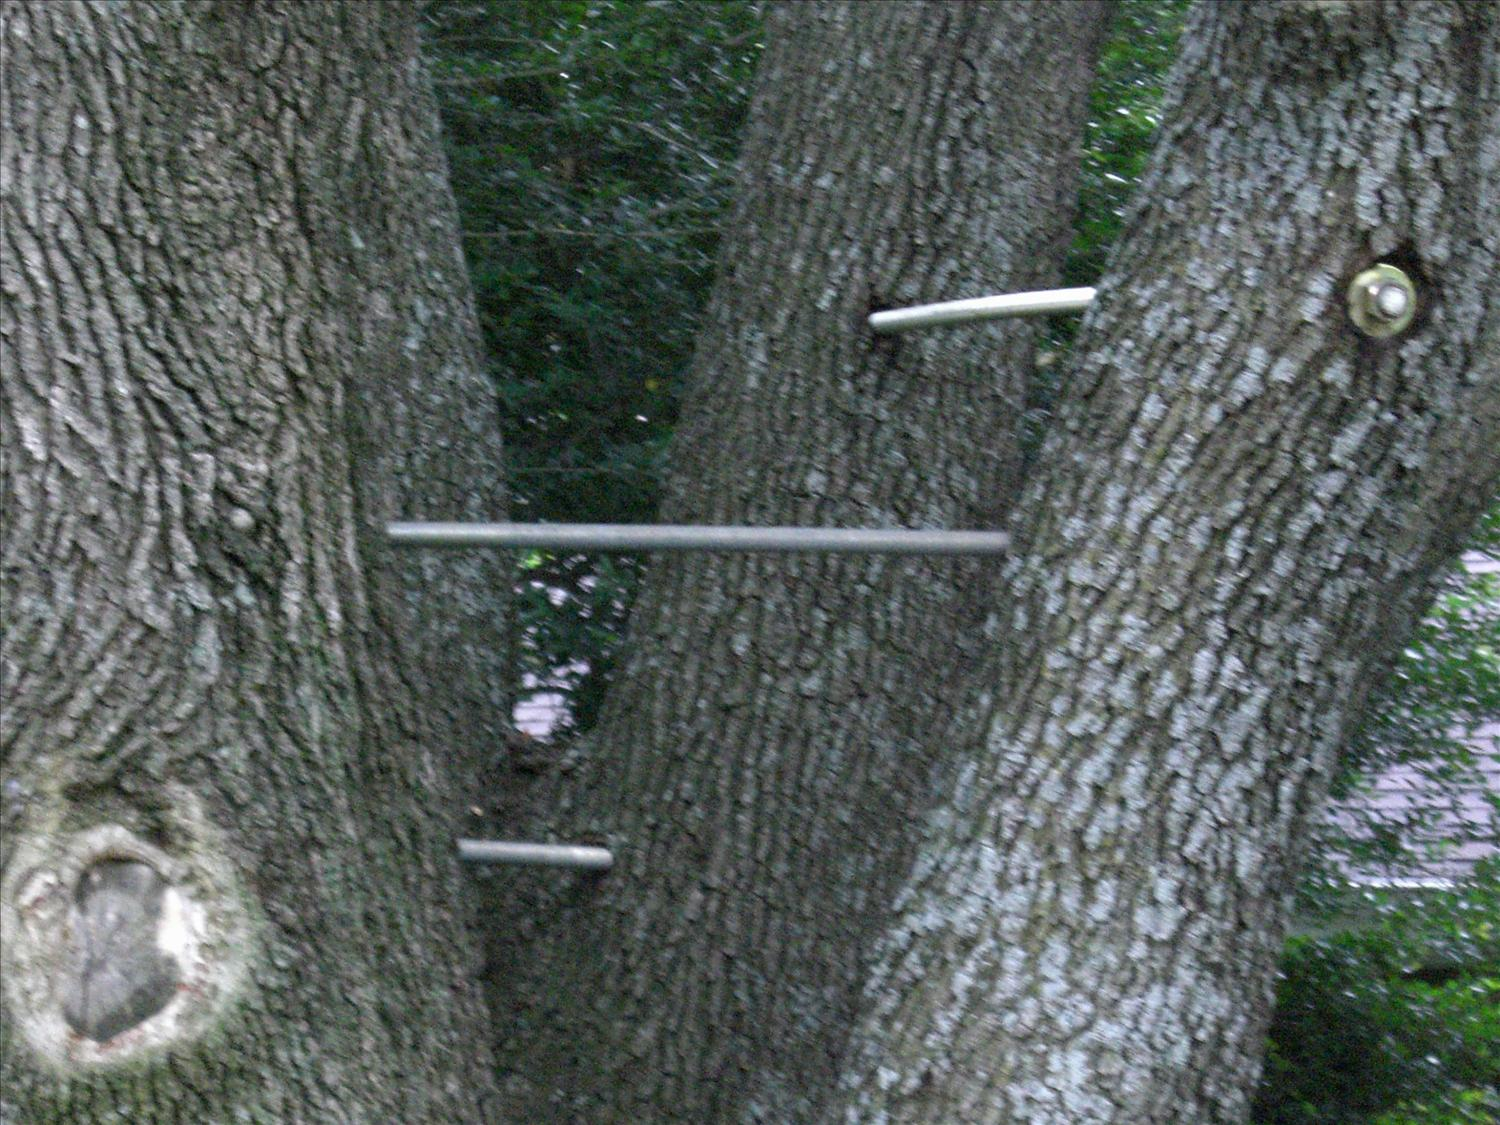 Cabling And Bolting To Save Trees By A Better Arborist